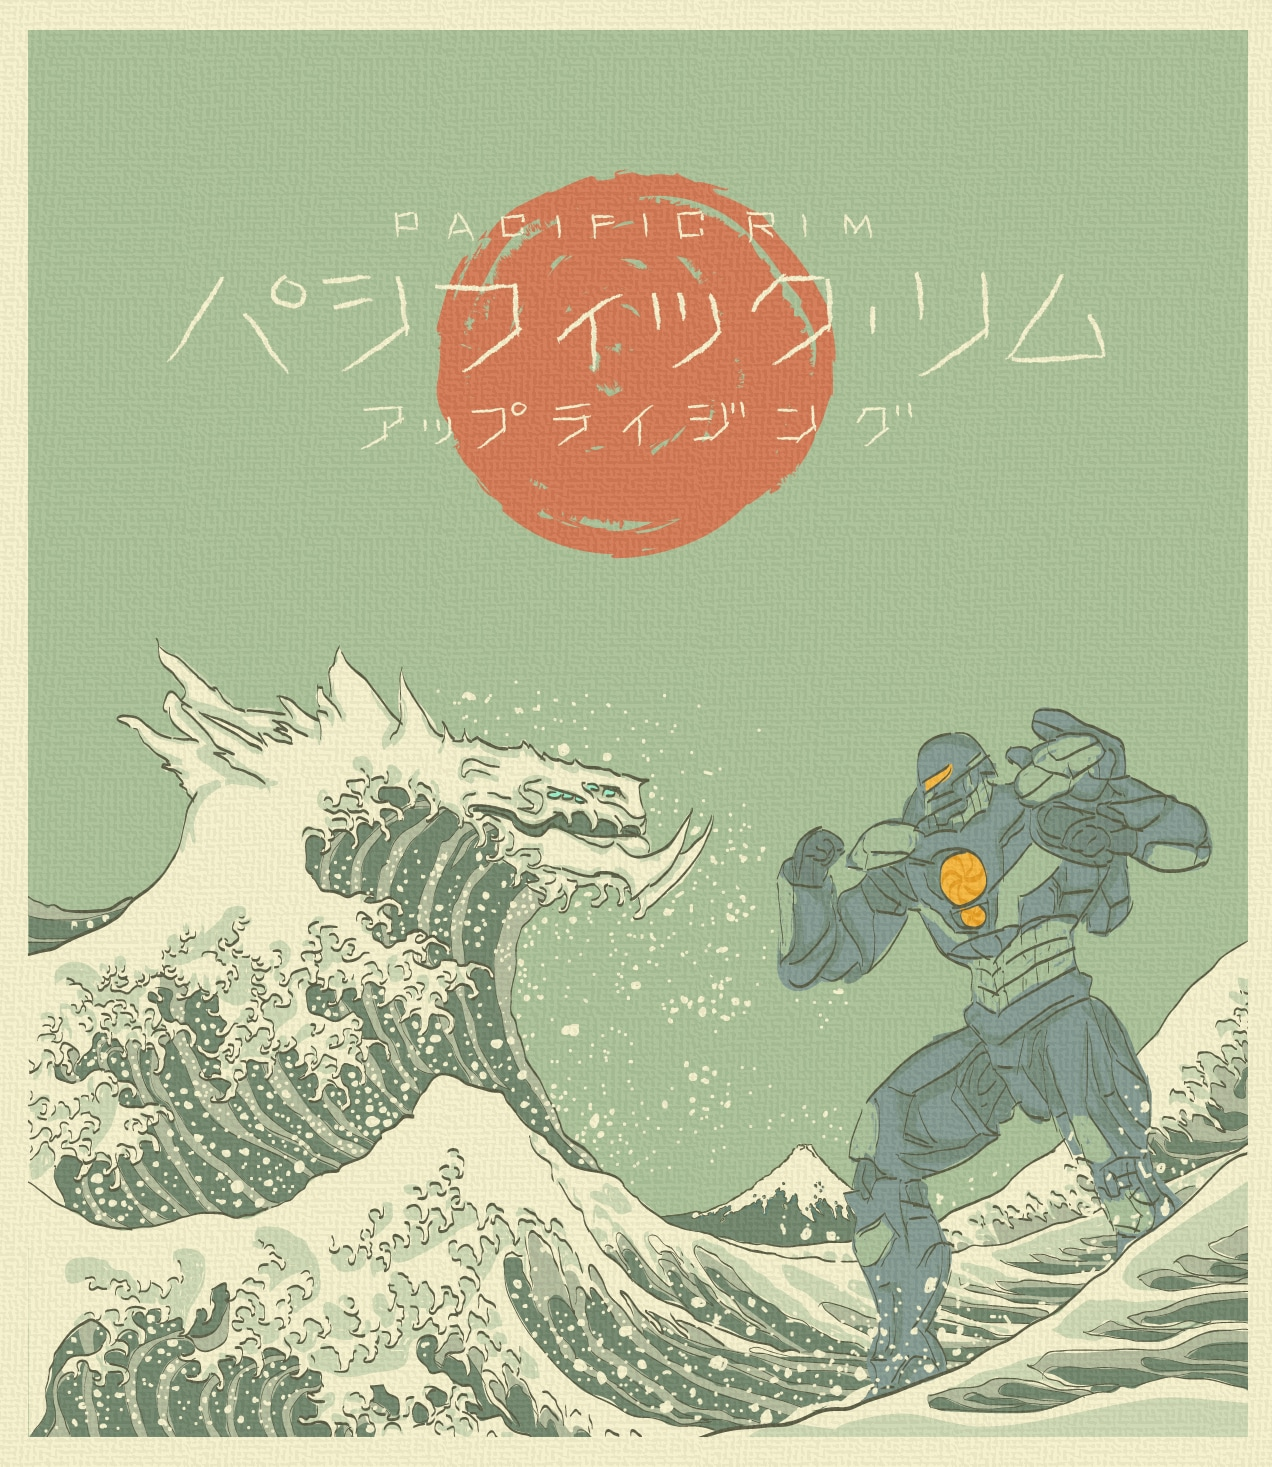 The Great Kaiju off Kanagawa